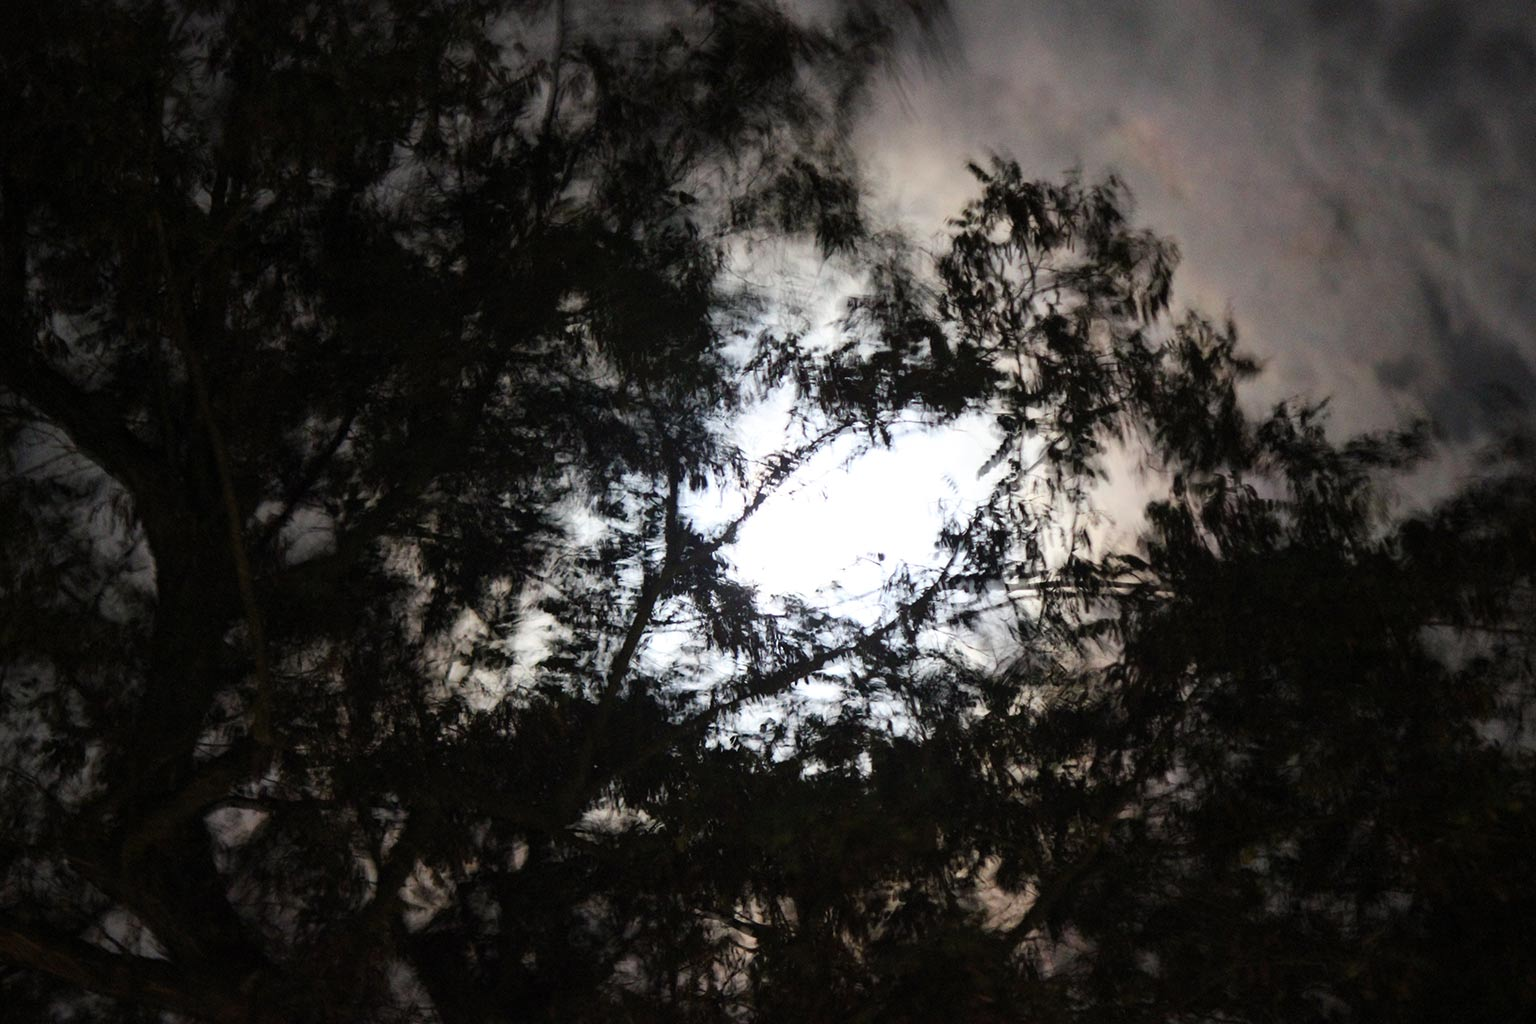 trees reflected in puddle